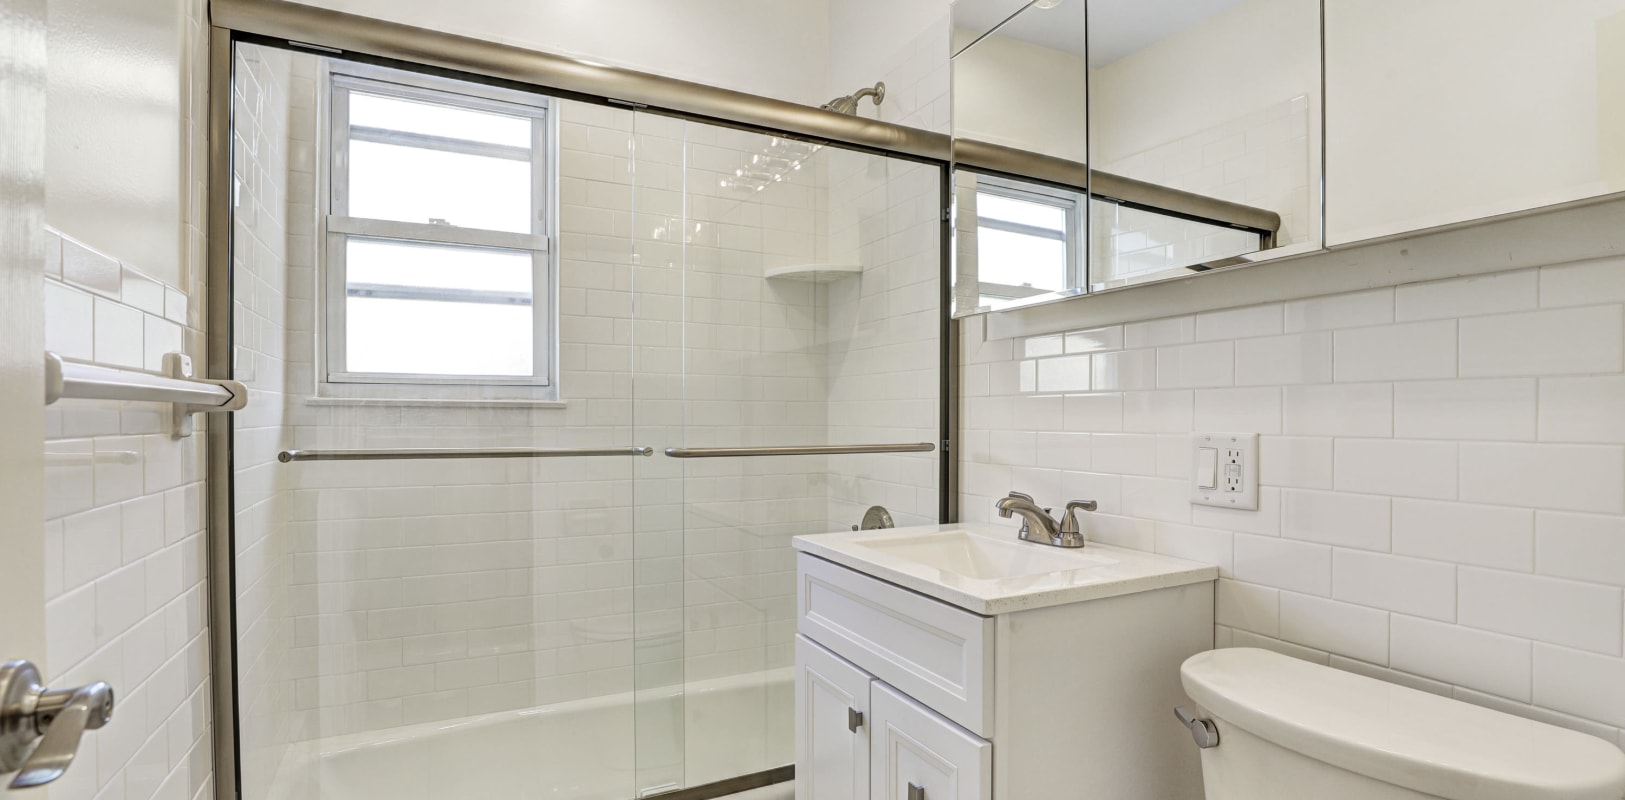 Spacious bathroom with an oval tub at General Wayne Townhomes and Ridgedale Gardens in Madison, New Jersey